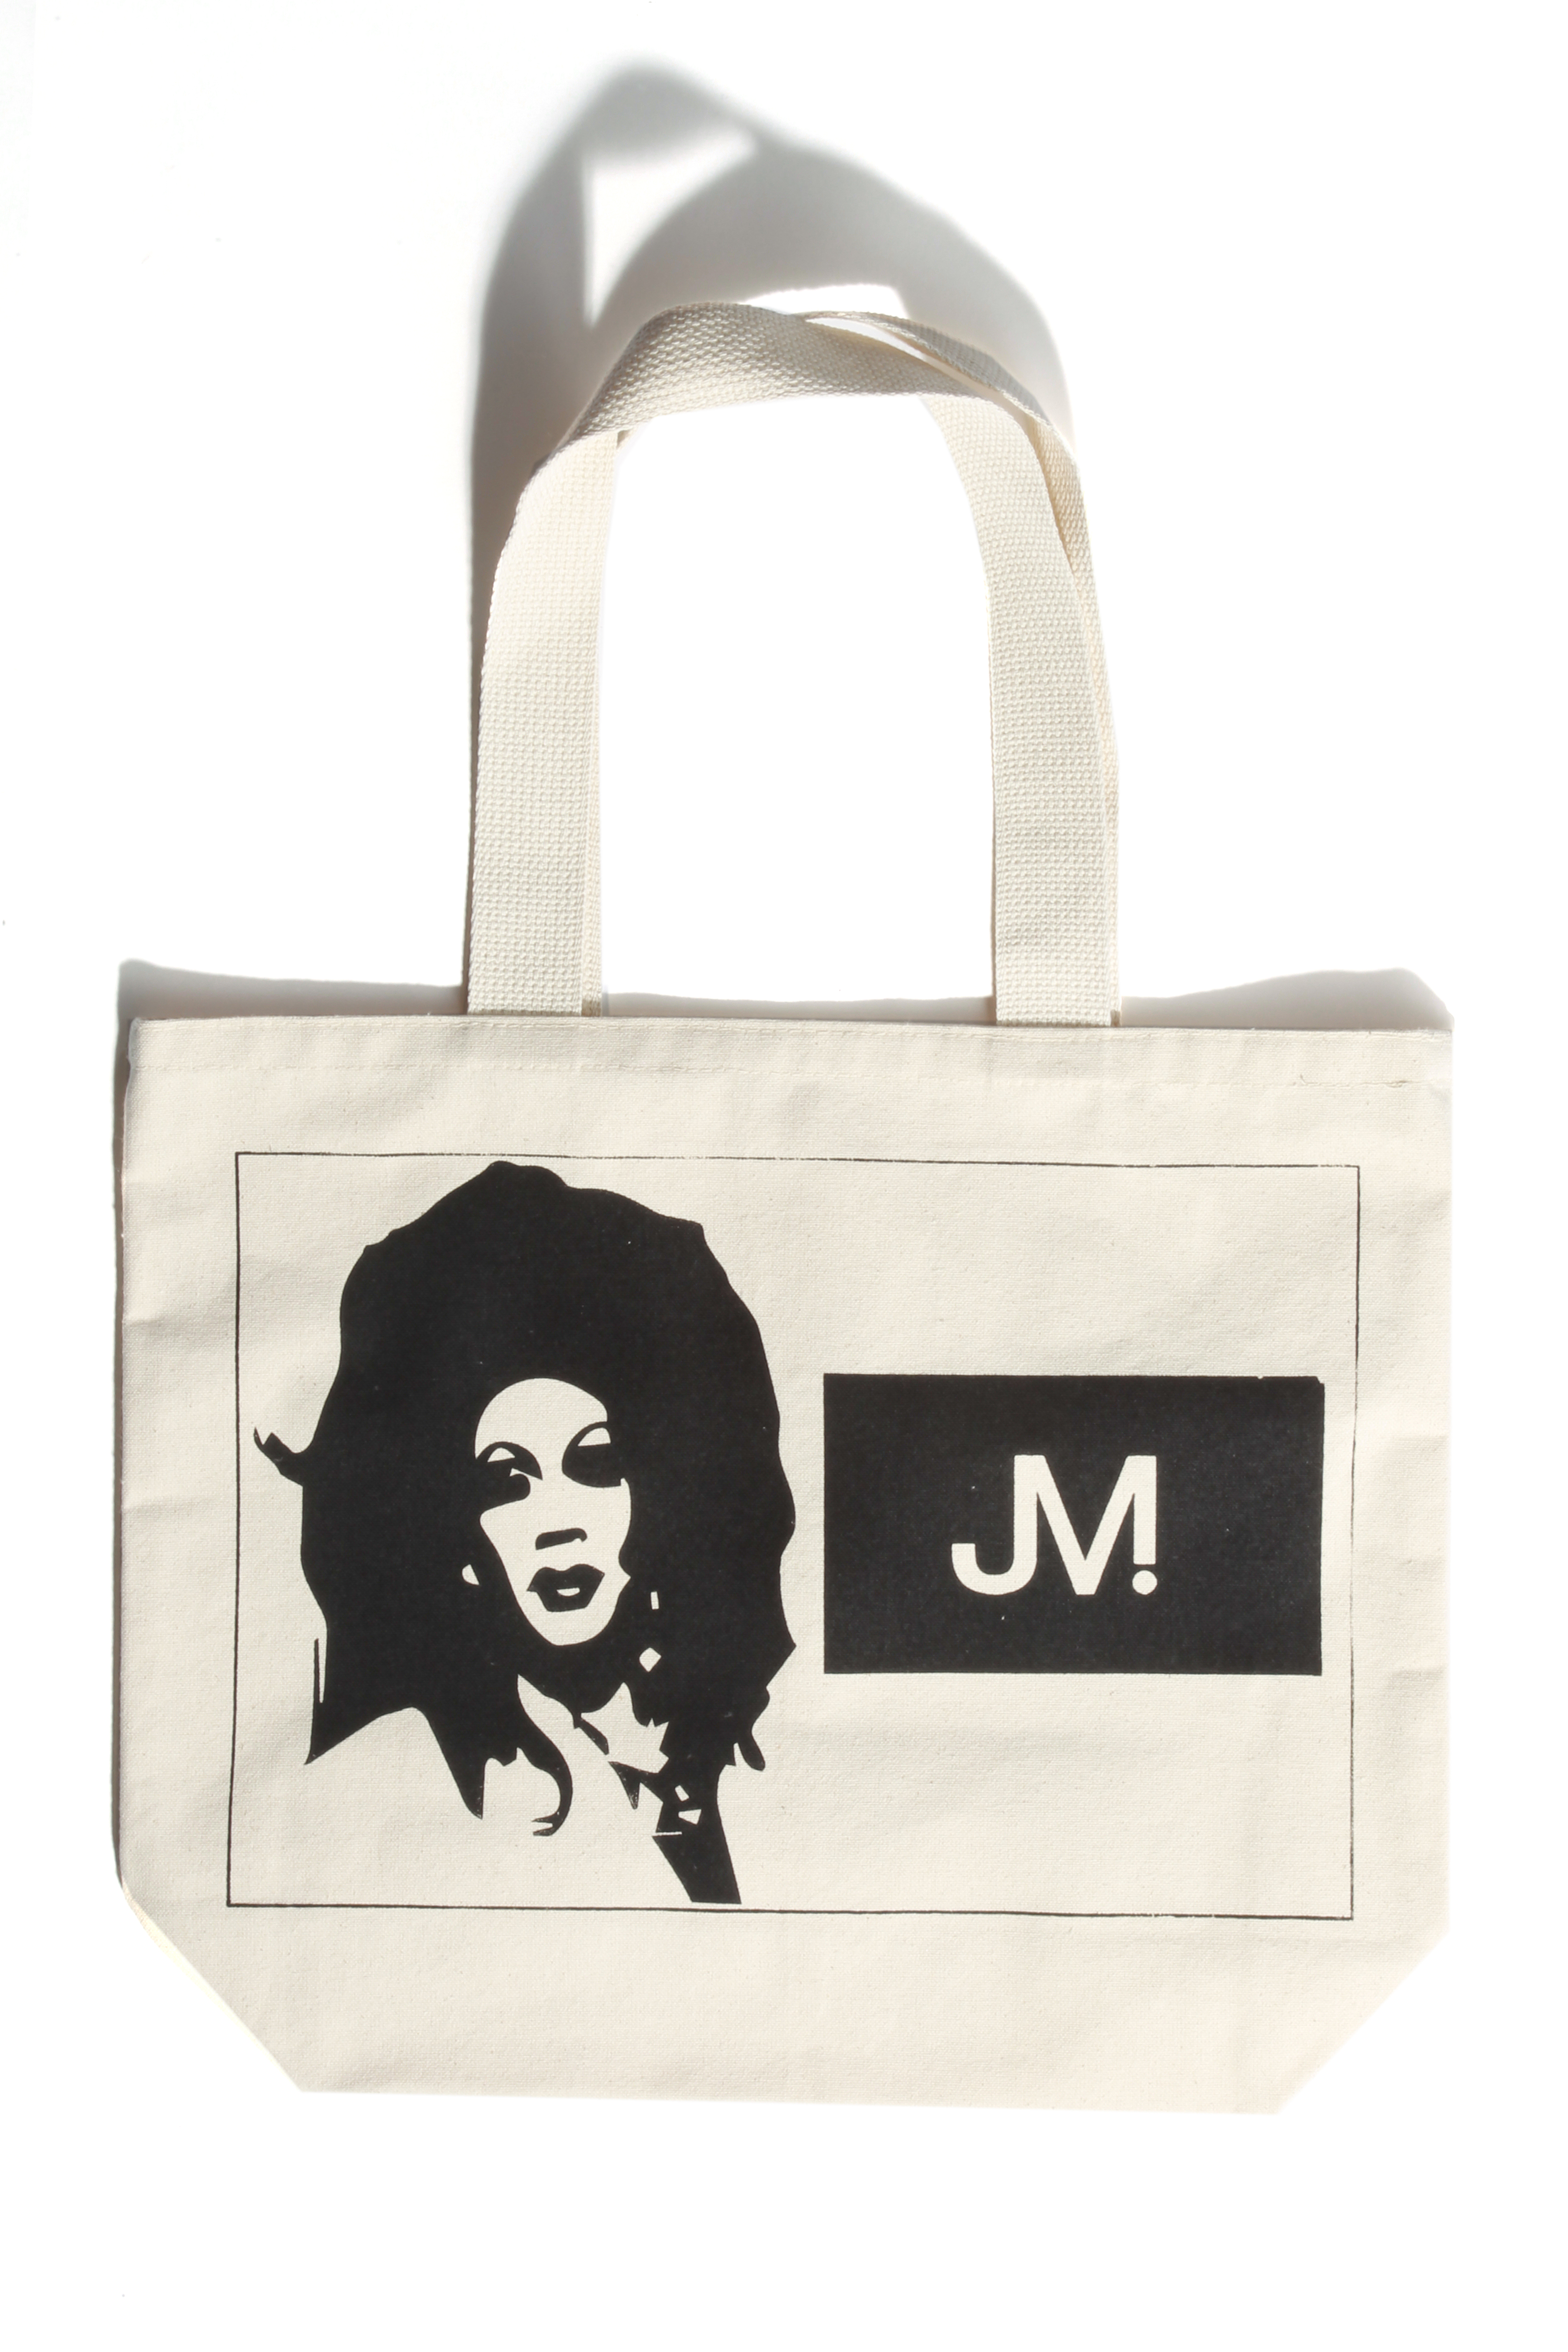 A tote designed by Sho Littlefield.